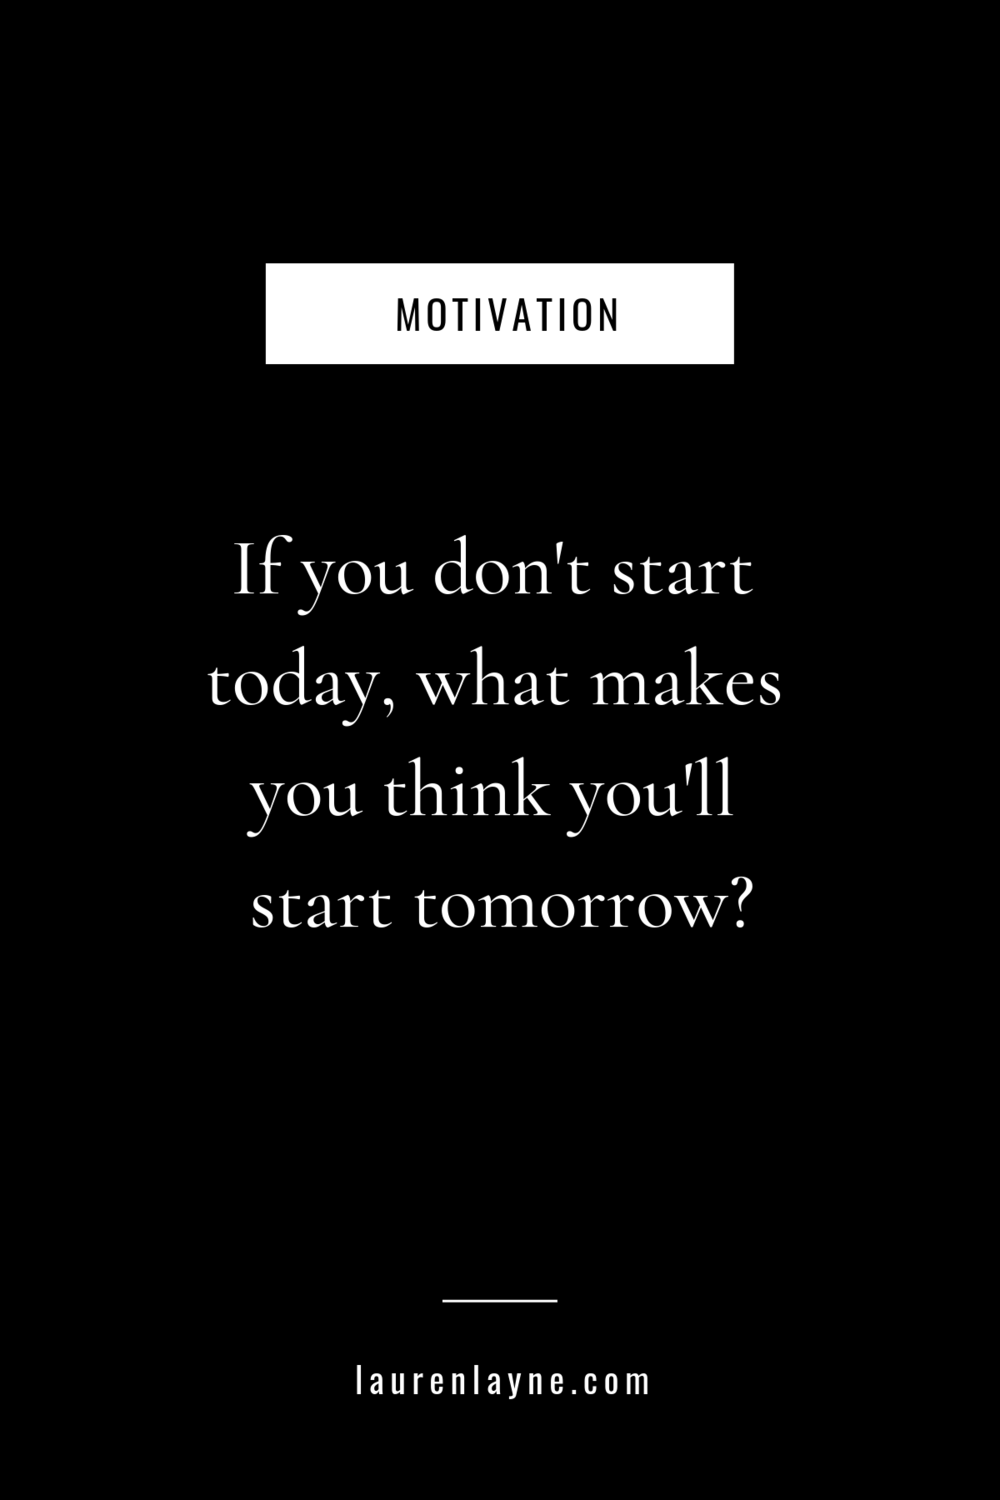 Monday Motivation - What are you waiting for?